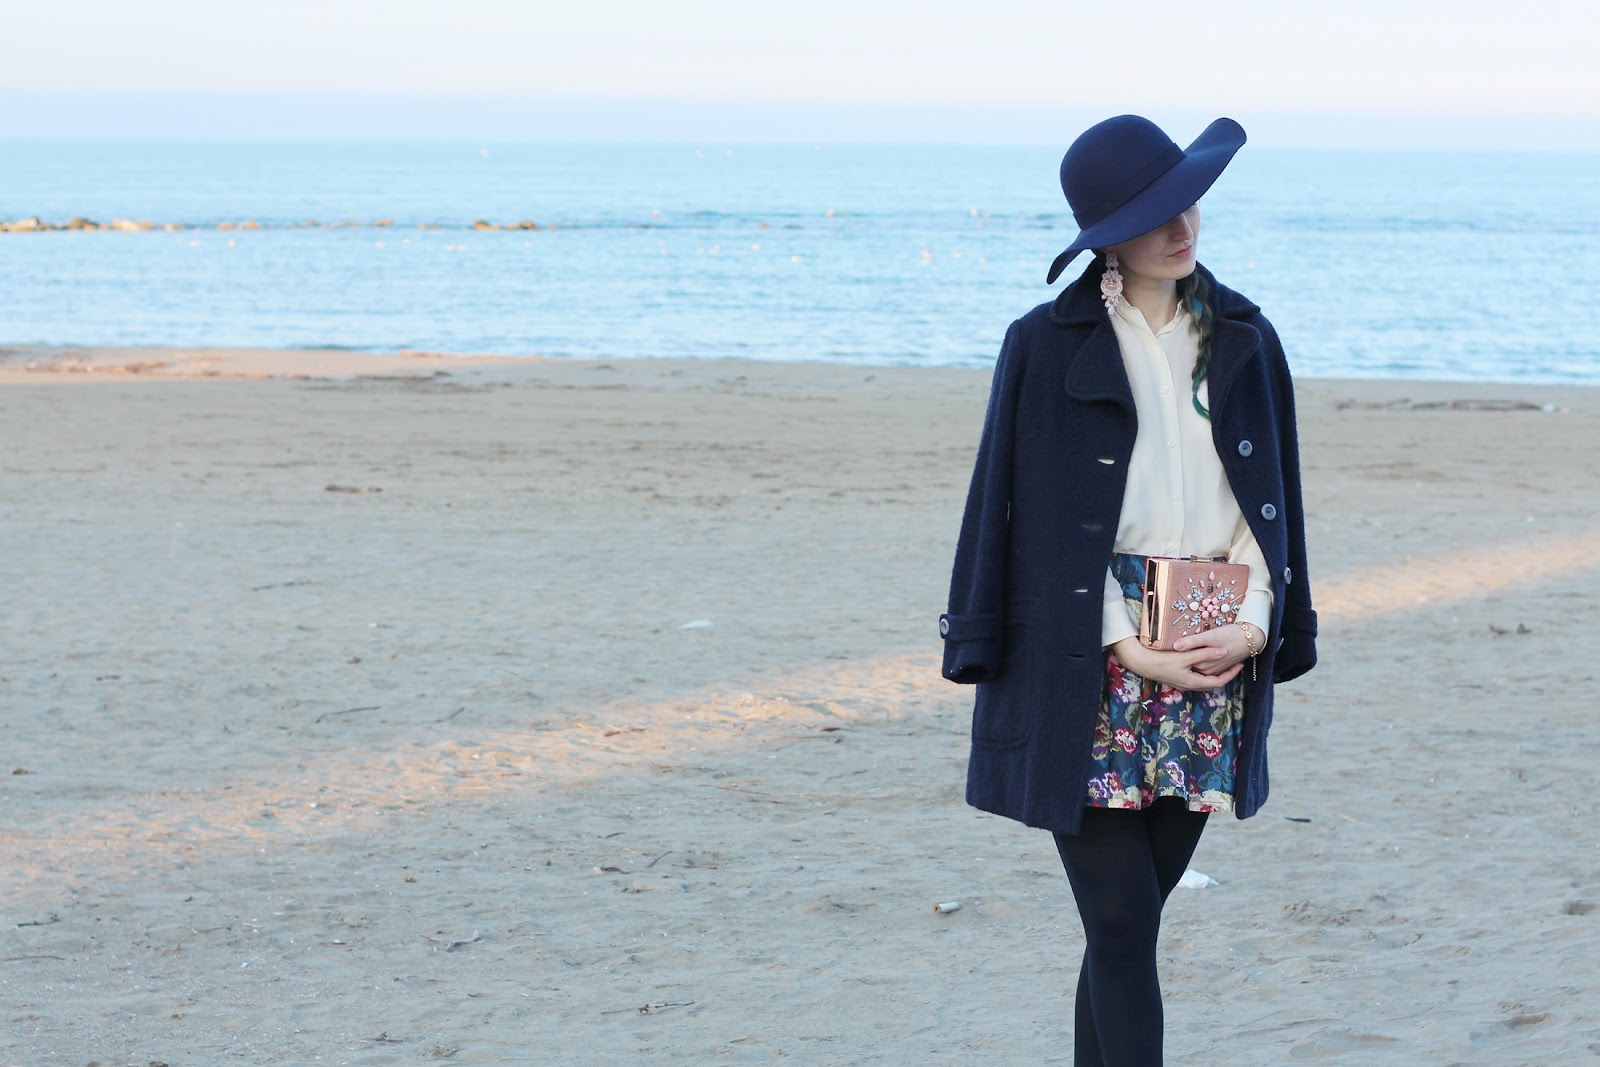 fashion style blogger italian girl italy vogue glamour flowers skirt new look bag pink shoes heels bar zara scarpe rosa vintage hairstyle colored hai hairstyle blue axels laboratory soutache earrings pescara